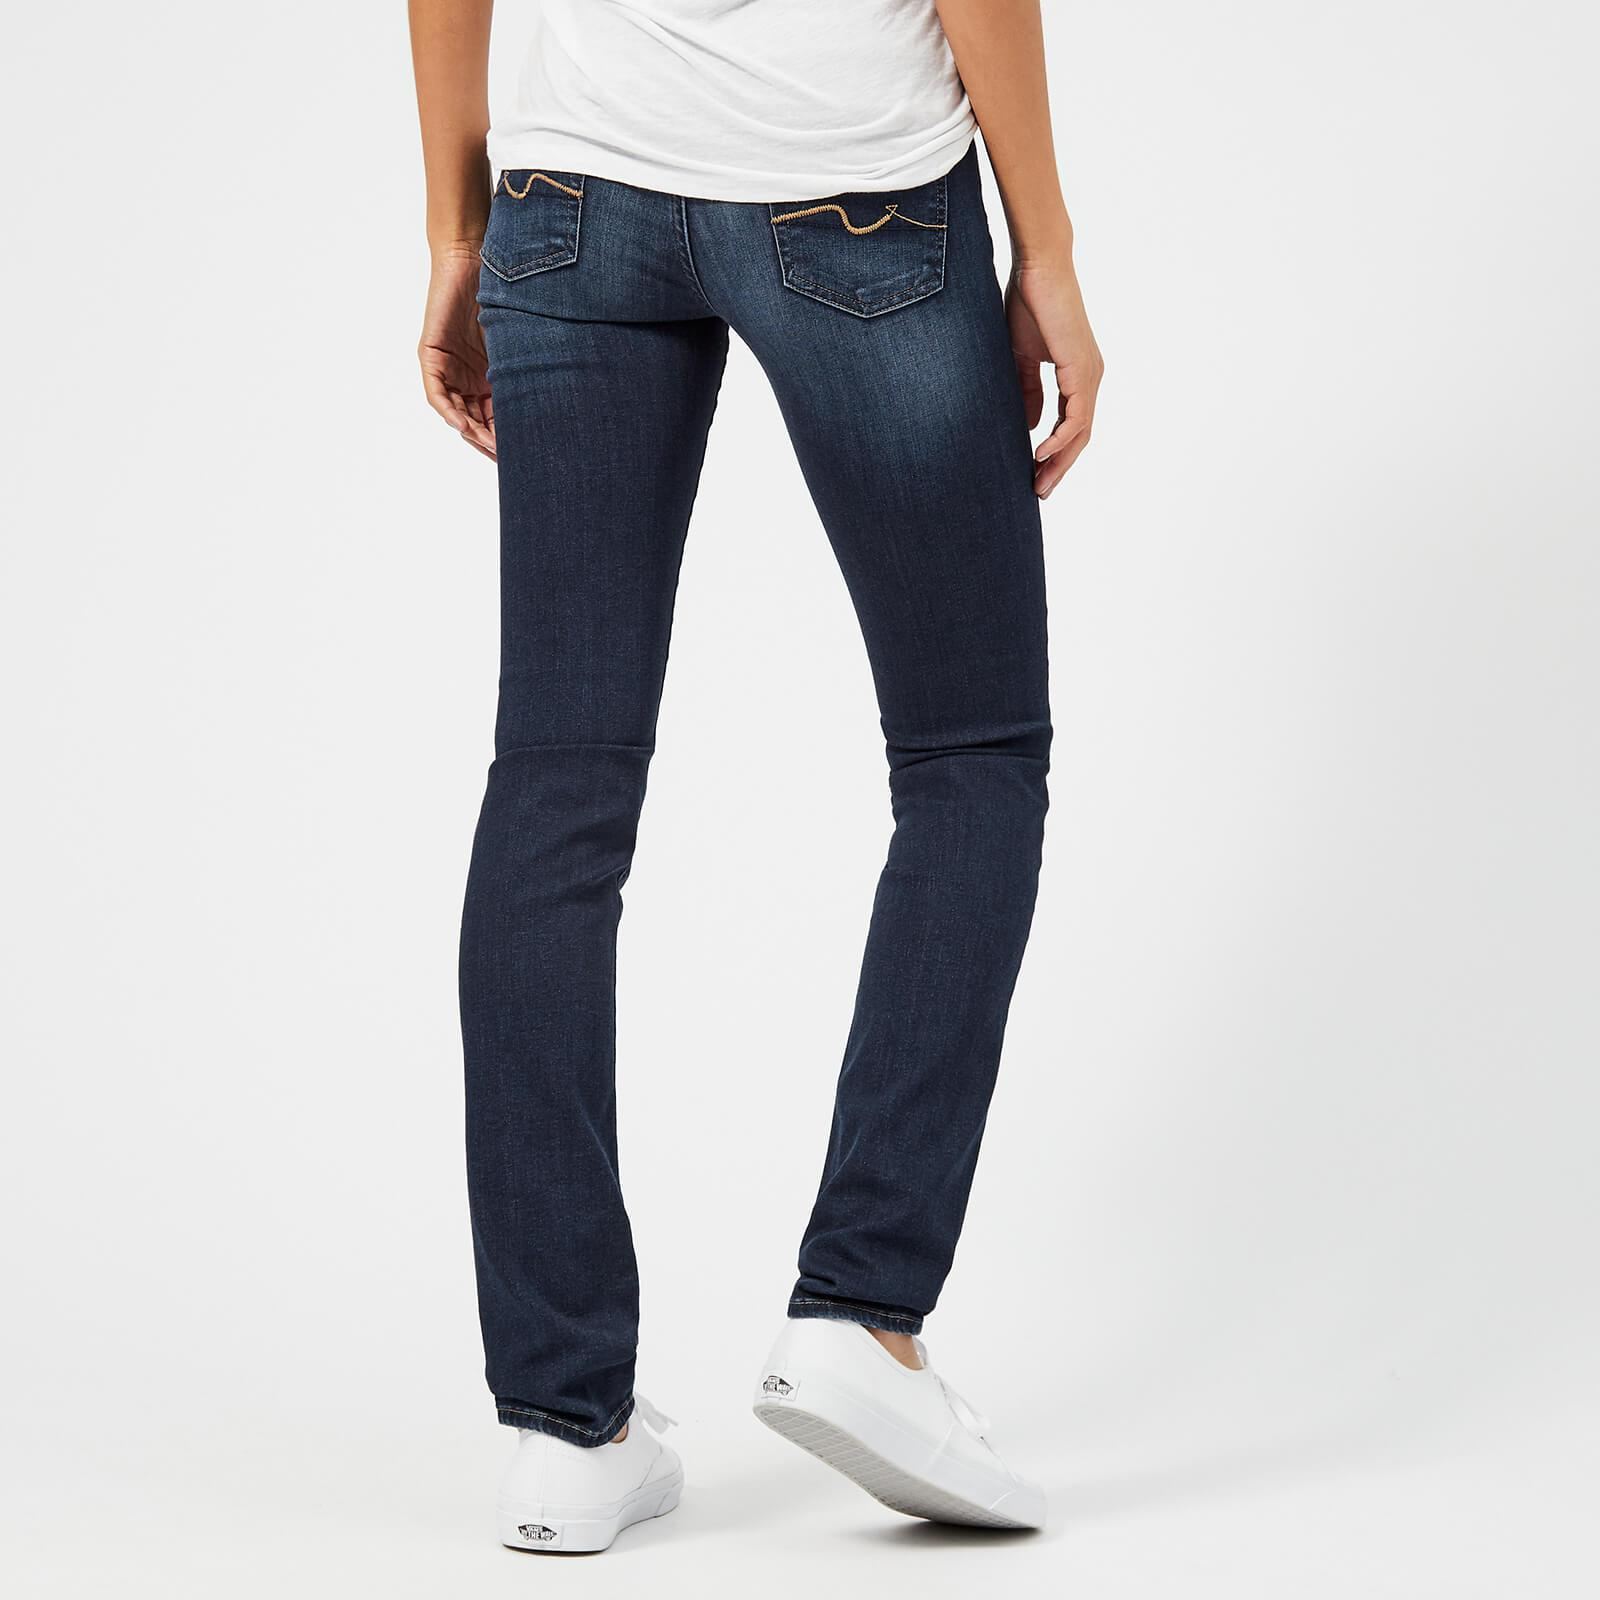 7 For All Mankind Denim Mid Rise Roxanne Jeans in Blue